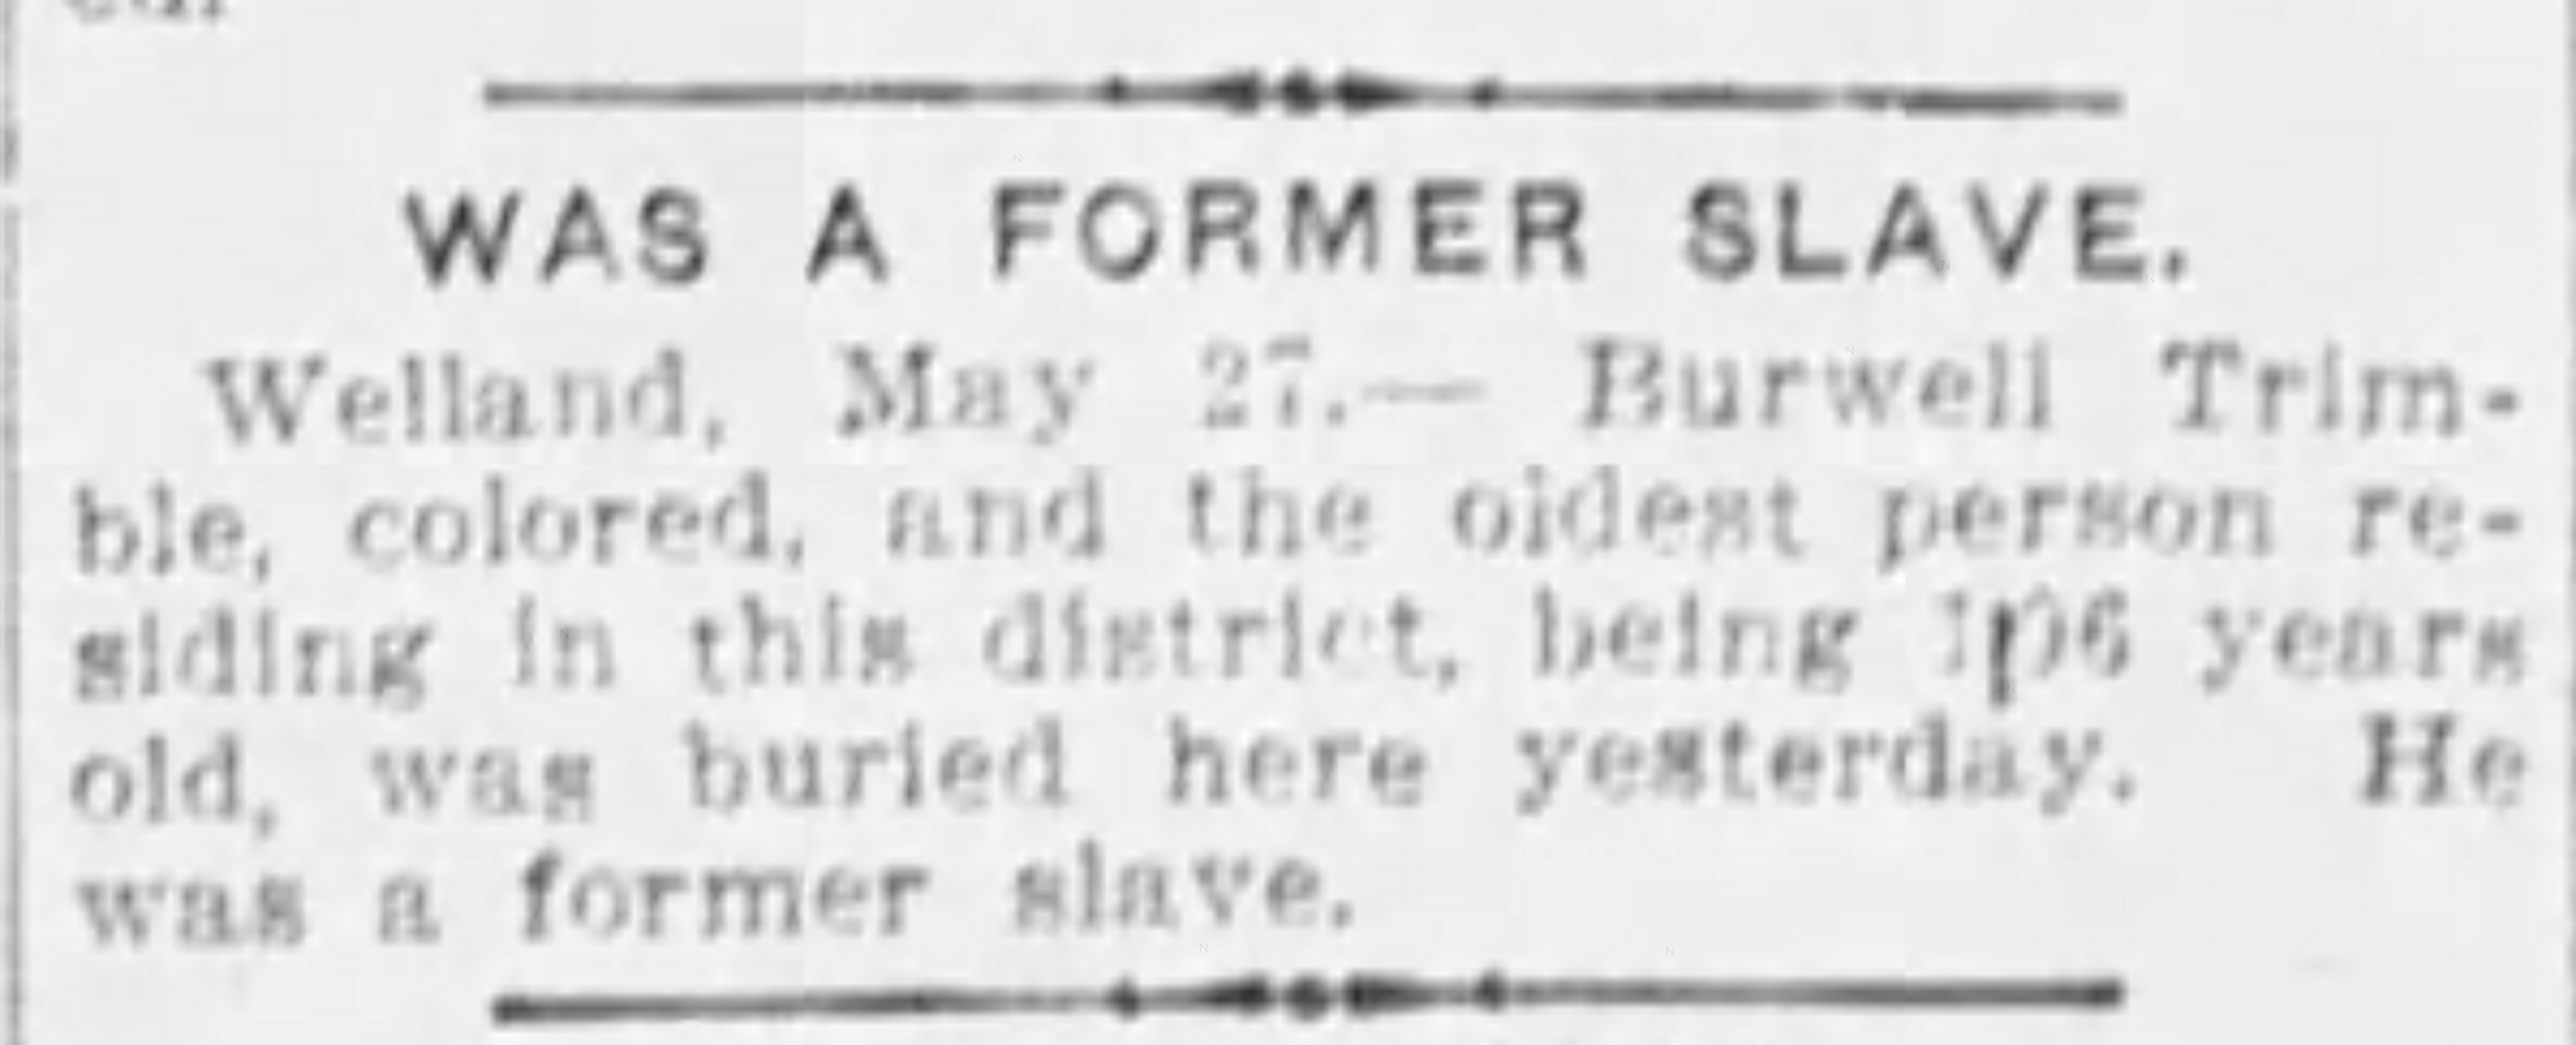 19040428 Burwell Trimble, Welland Ottawa Citizen, April 28, 1904